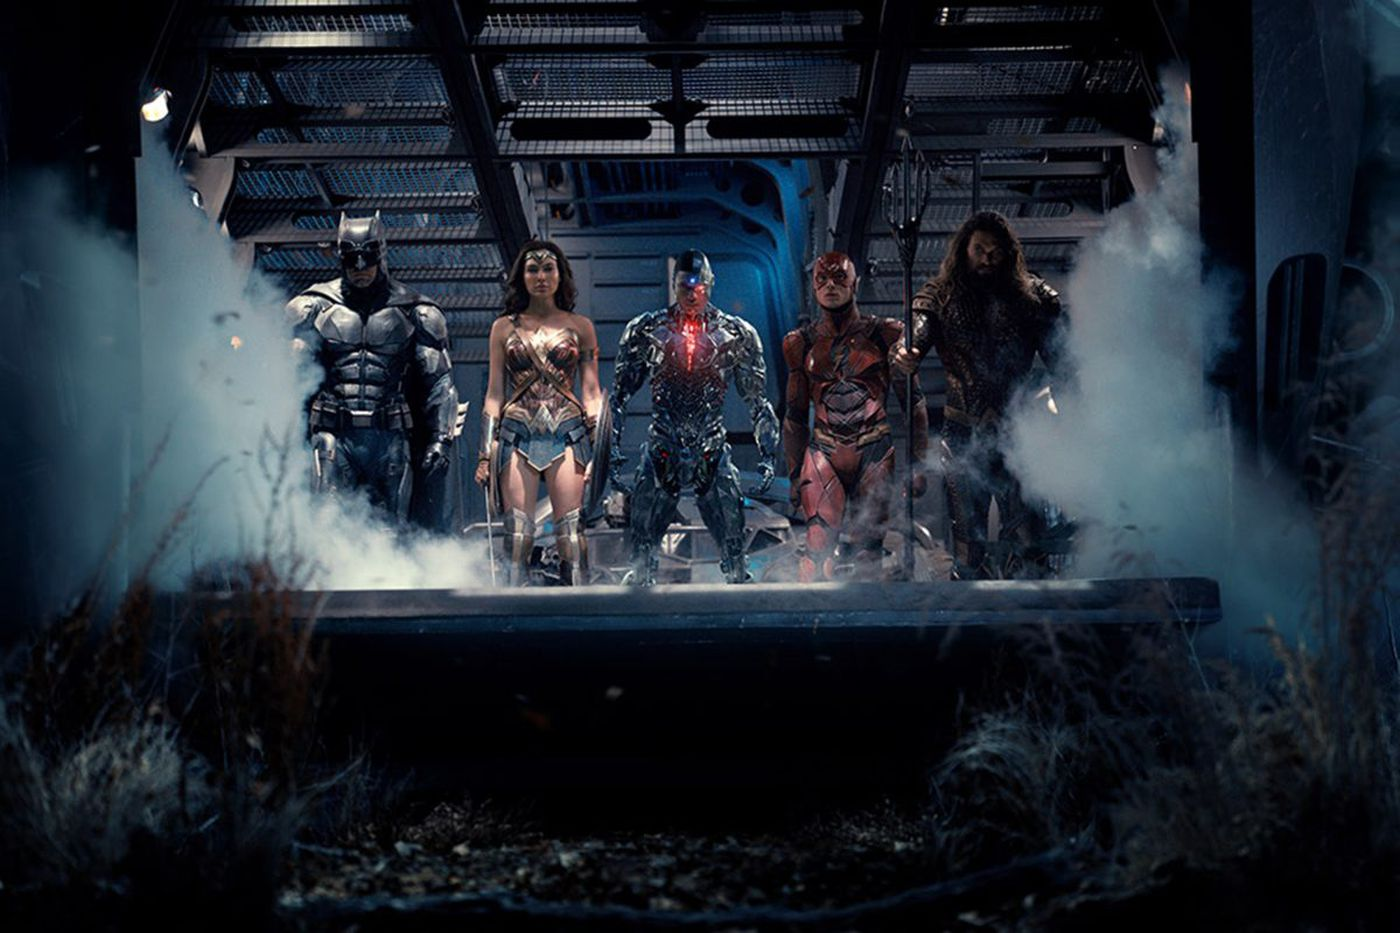 From Haddon Heights to Hollywood: Ray Fisher talks about his road to Cyborg and 'Justice League.'